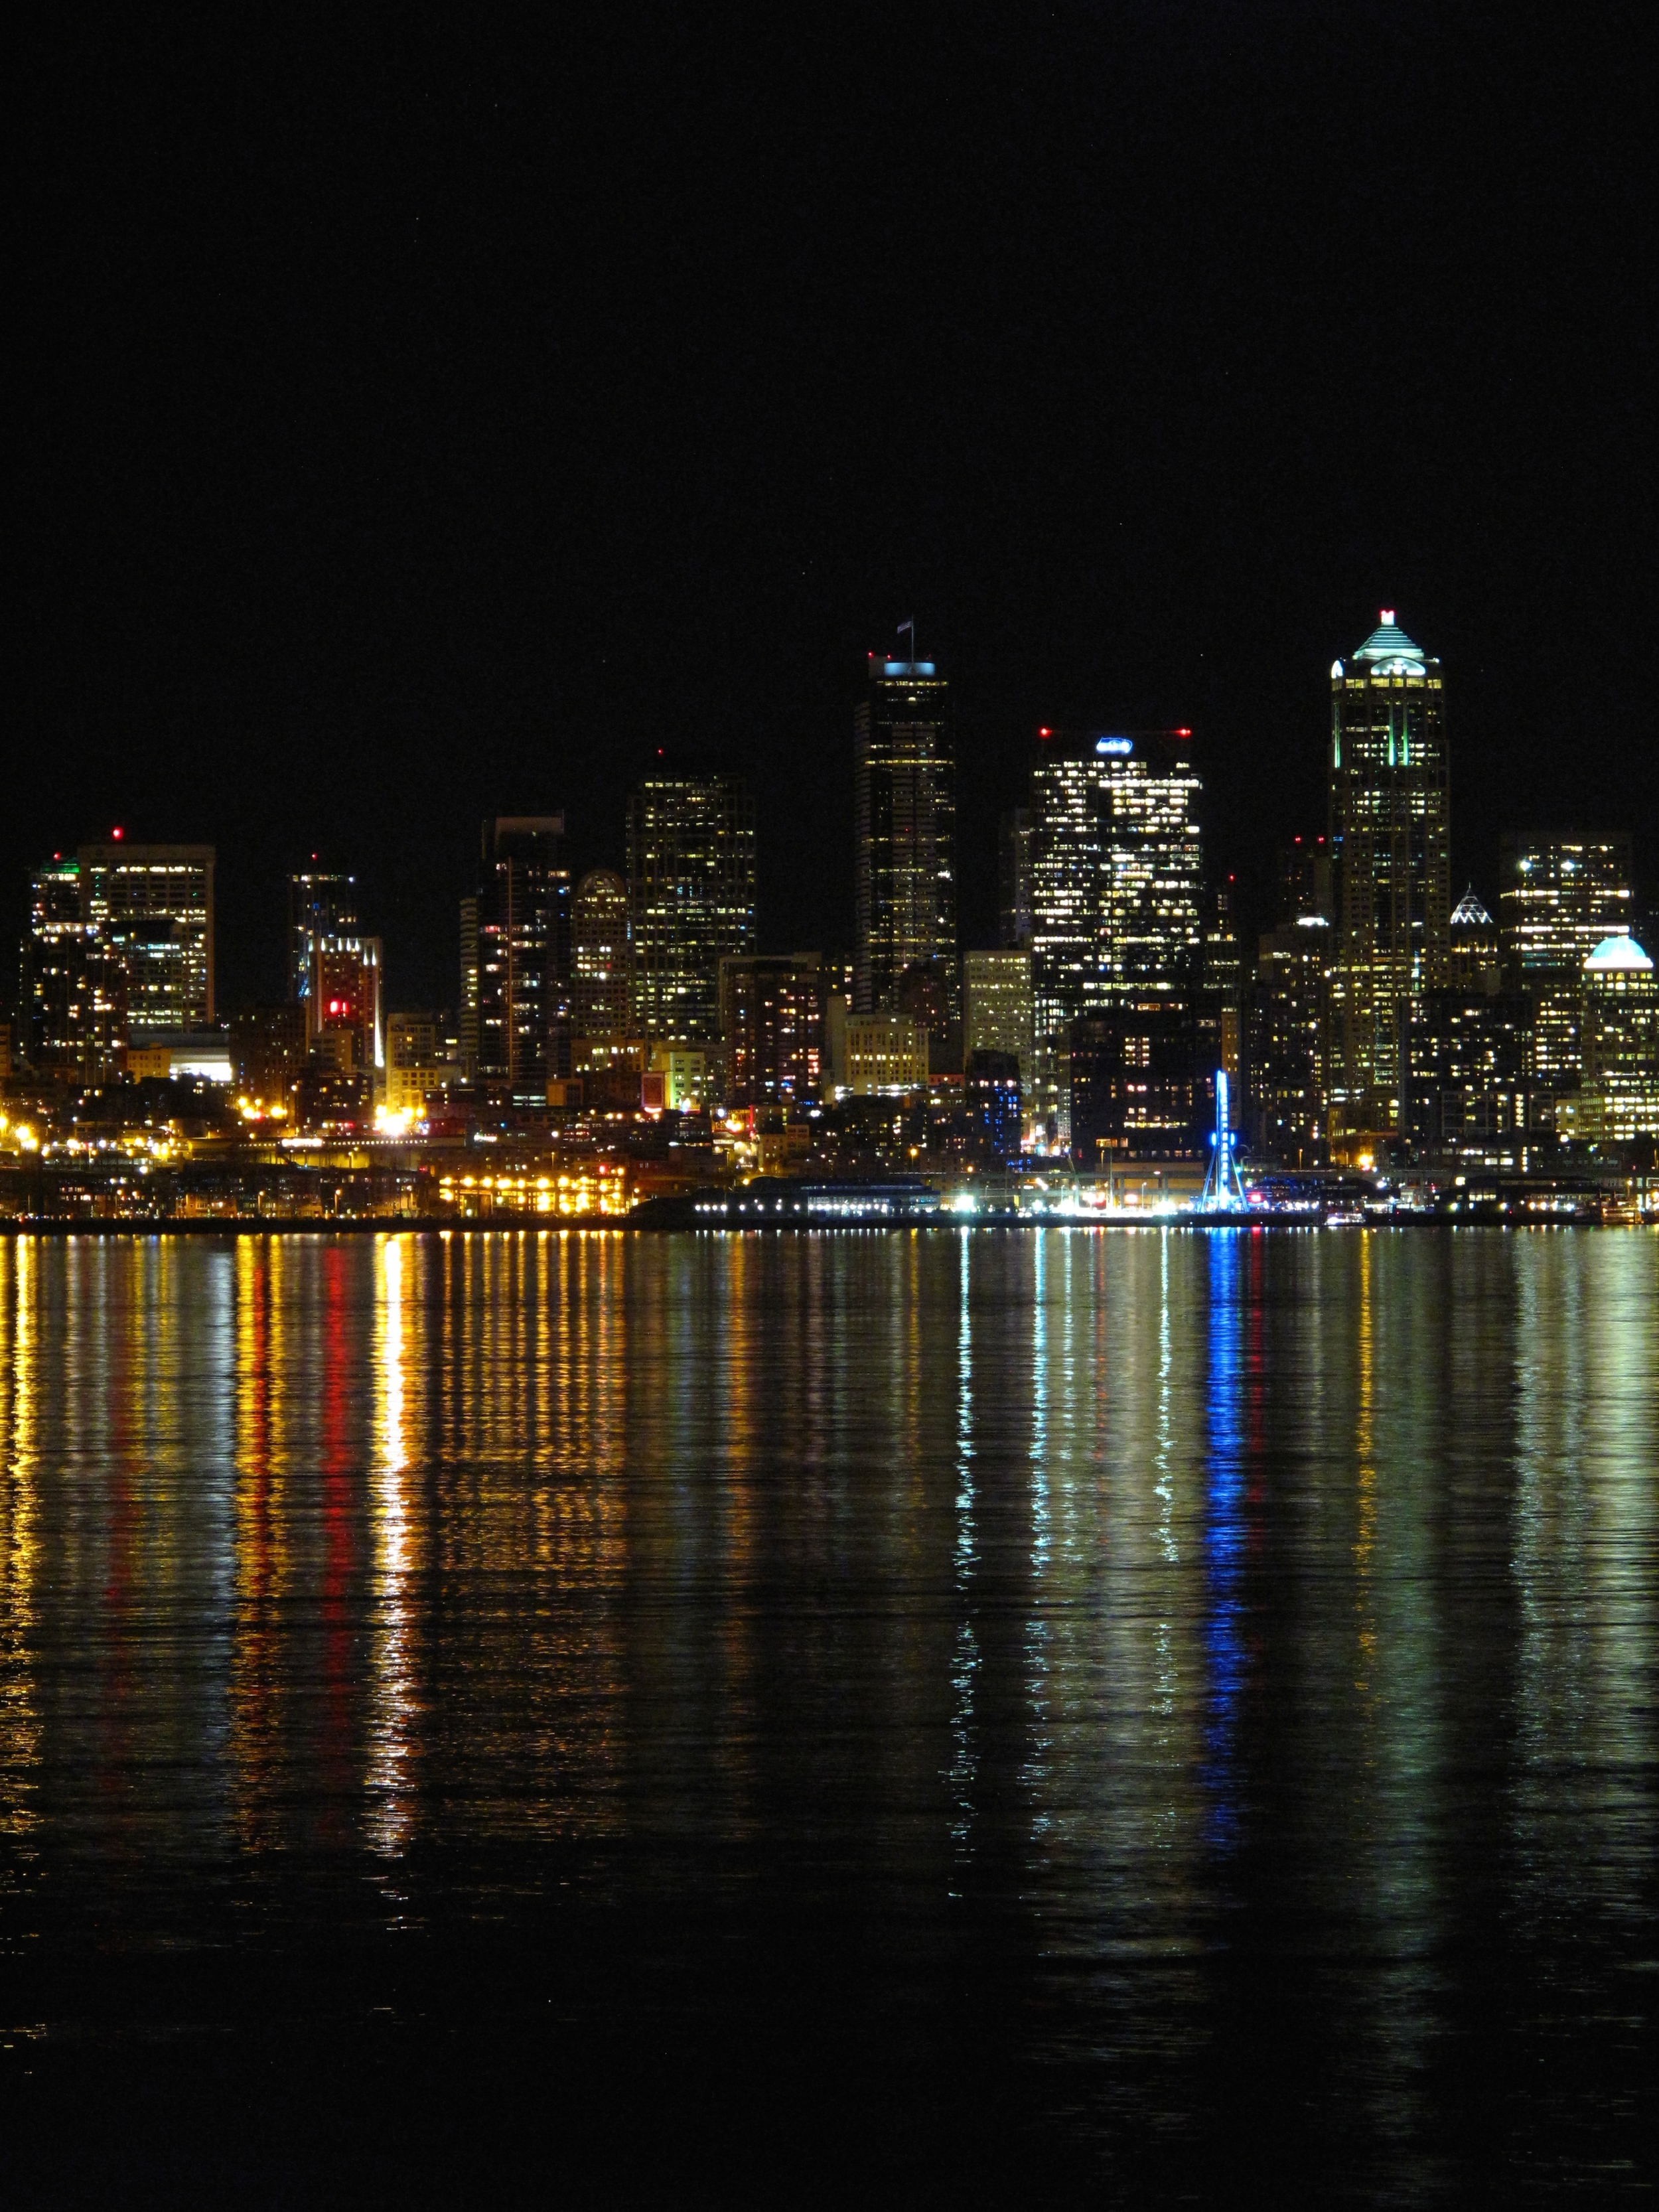 Alki Beach view of Seattle skyline at night - with all the lights on the water.